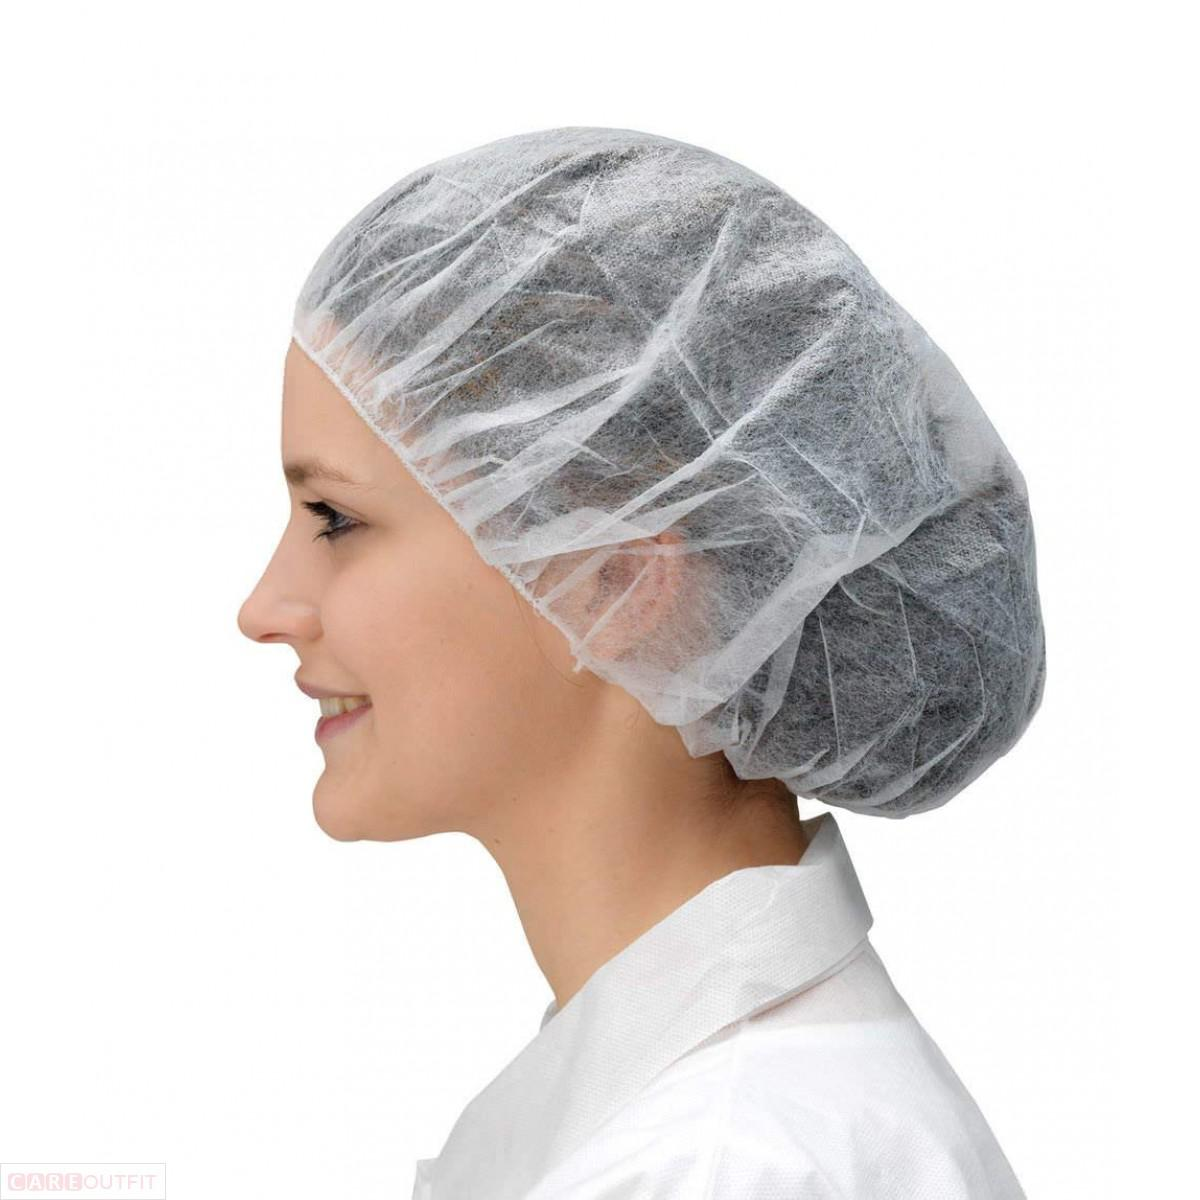 hairnet-cover-protectores-cabello-4